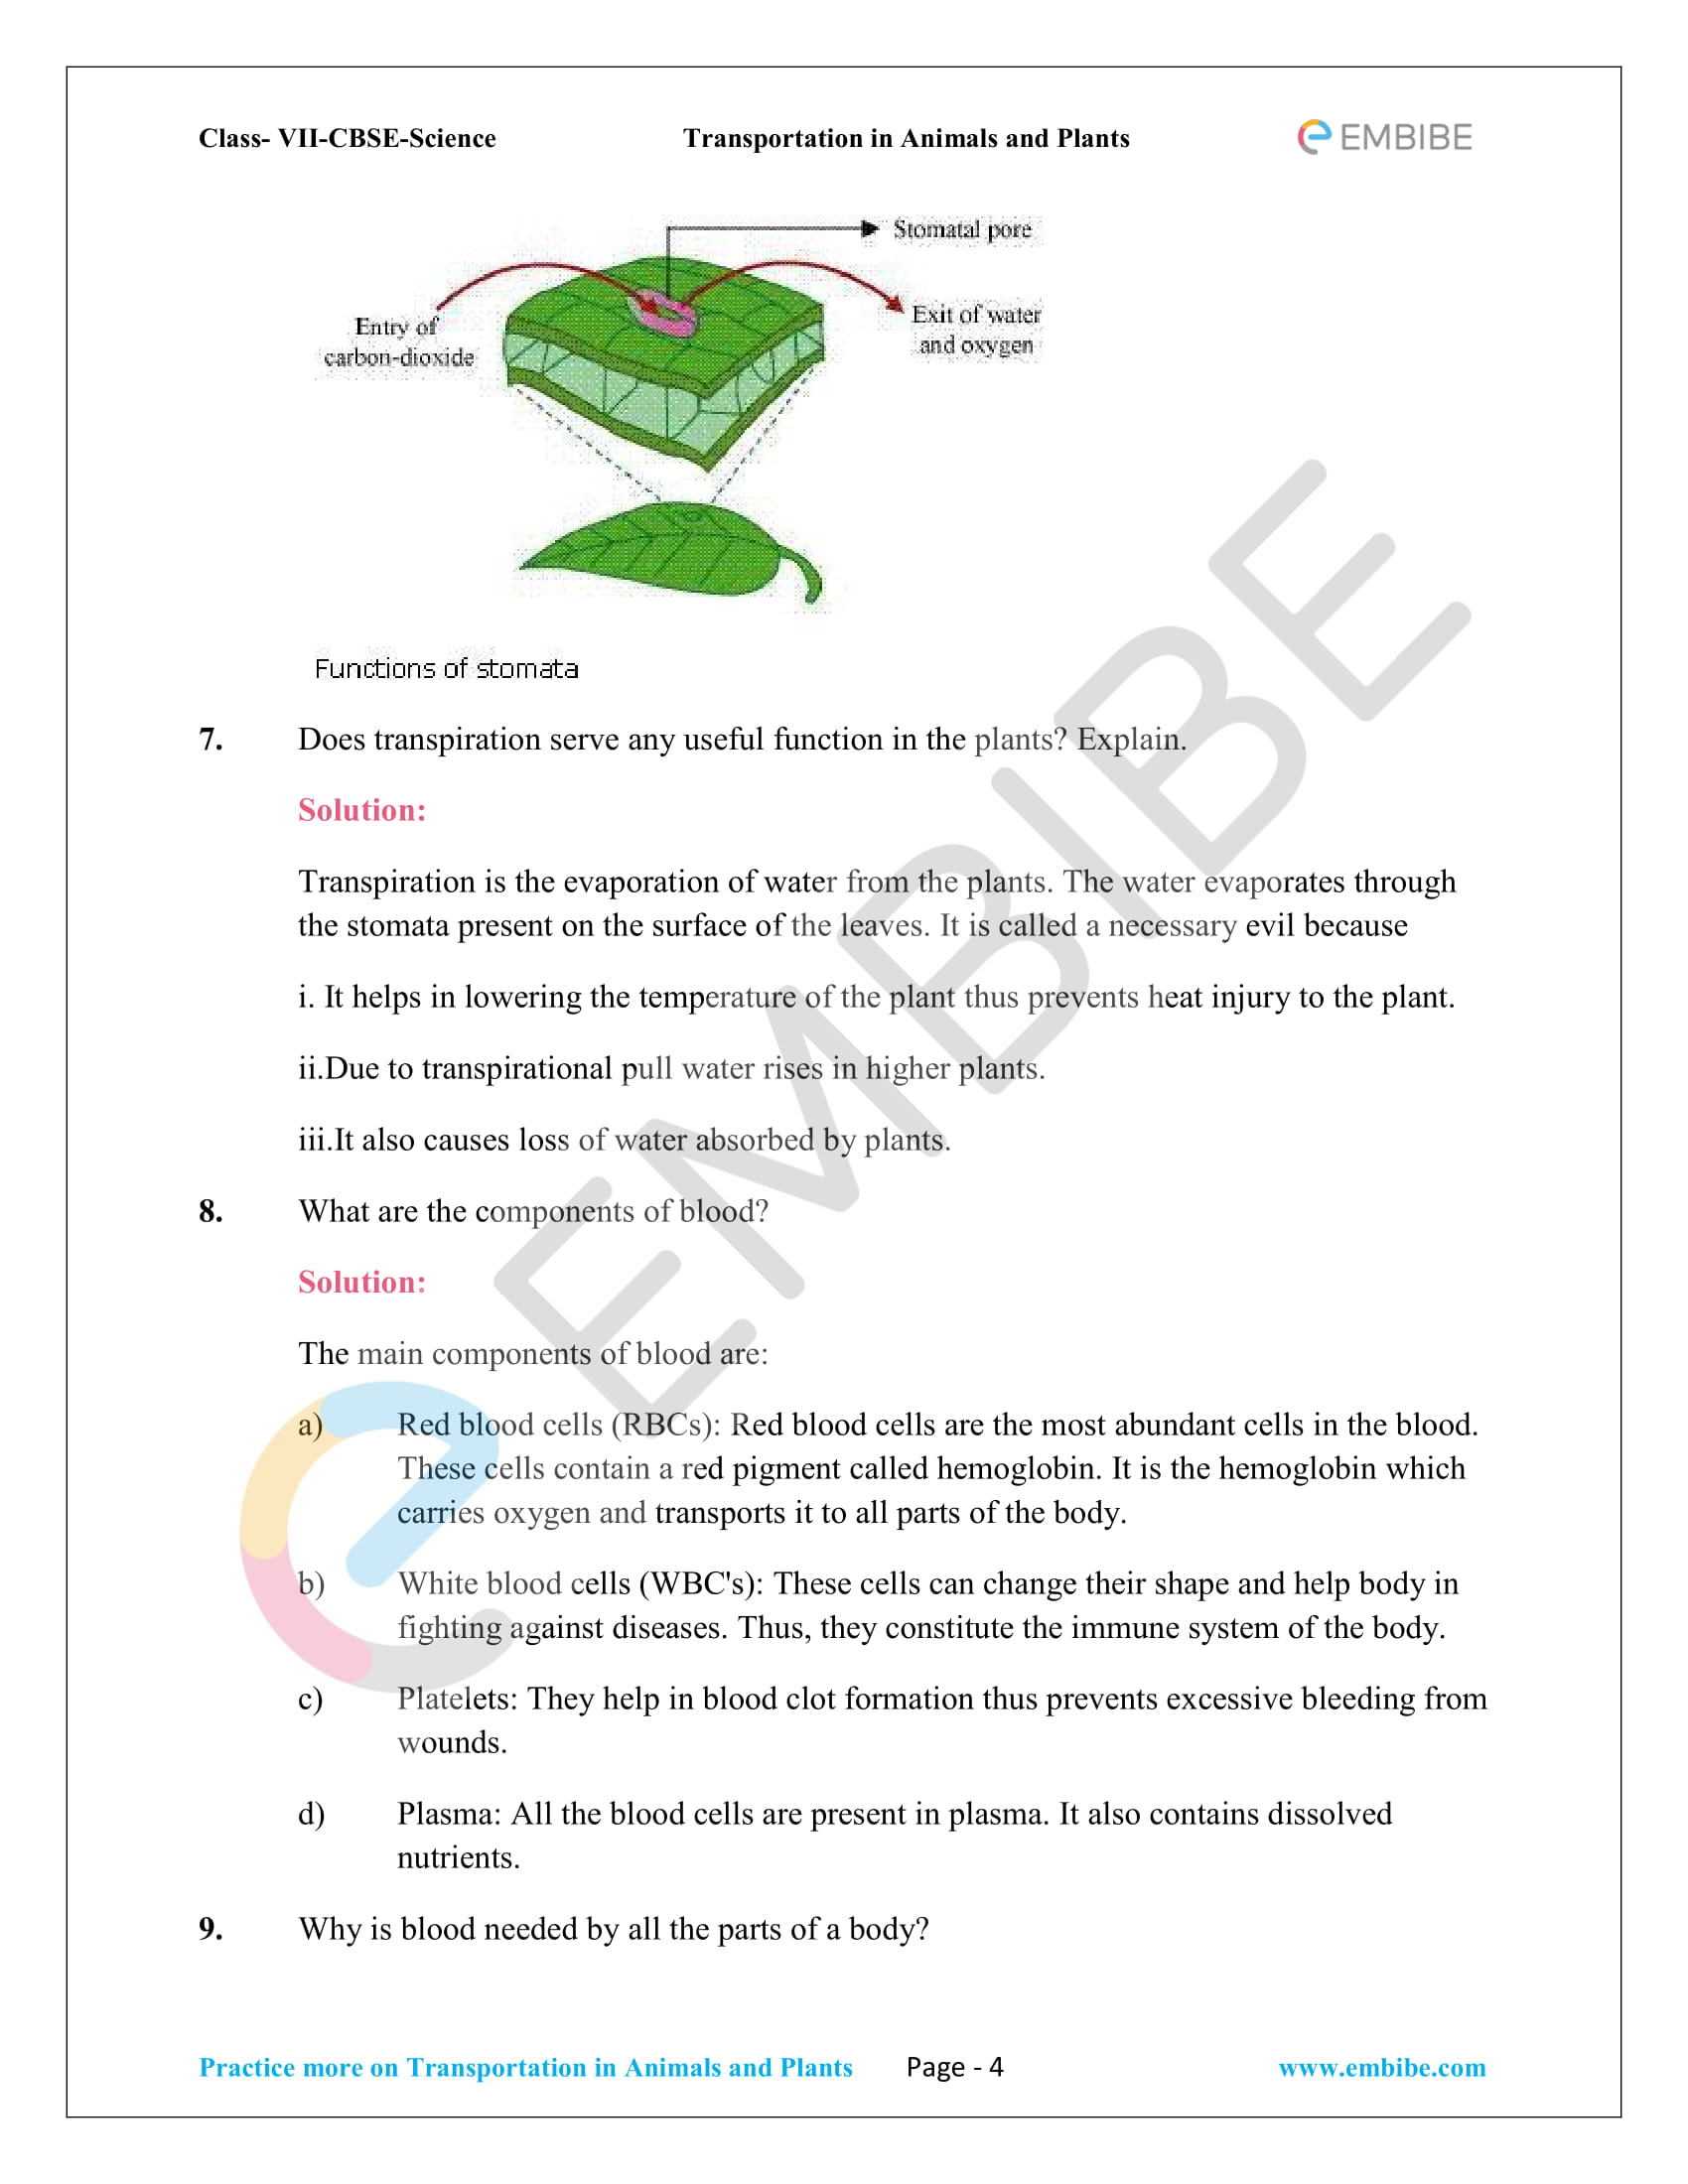 NCERT_G7_BOC_Biology_Transportation in Animals and Plants-4